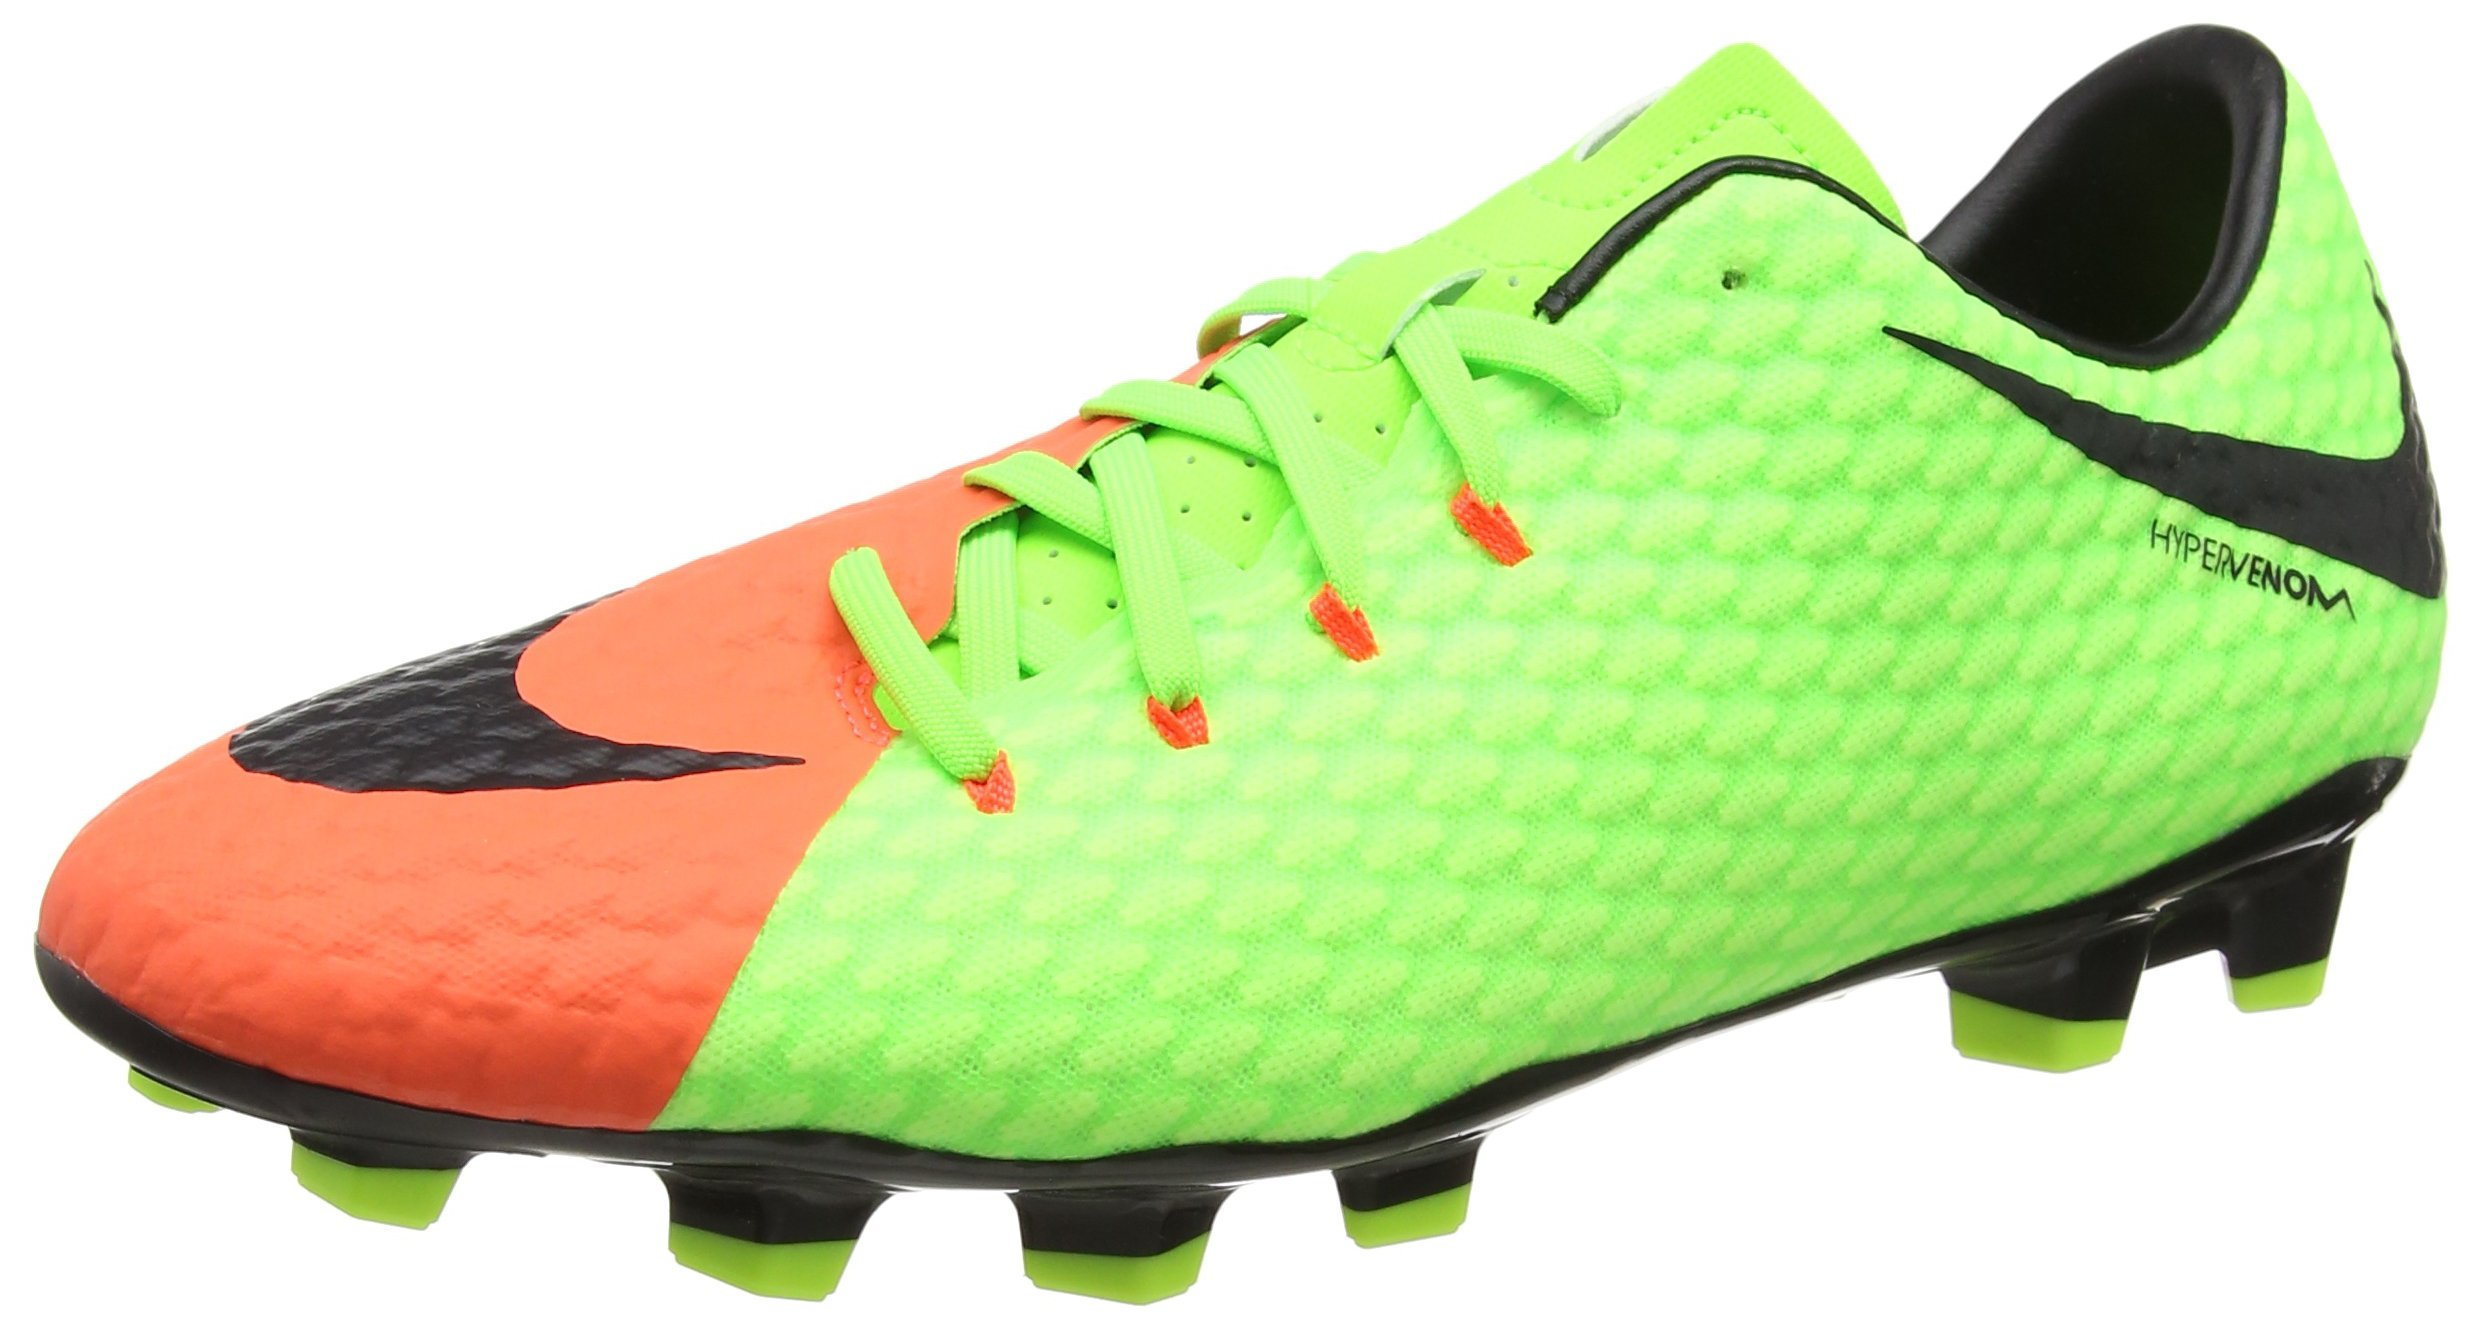 NIKE Men's Hypervenom Phelon III FG Soccer Cleat Electric Green/Black/Hyper Orange/Volt Size 9 M US by NIKE